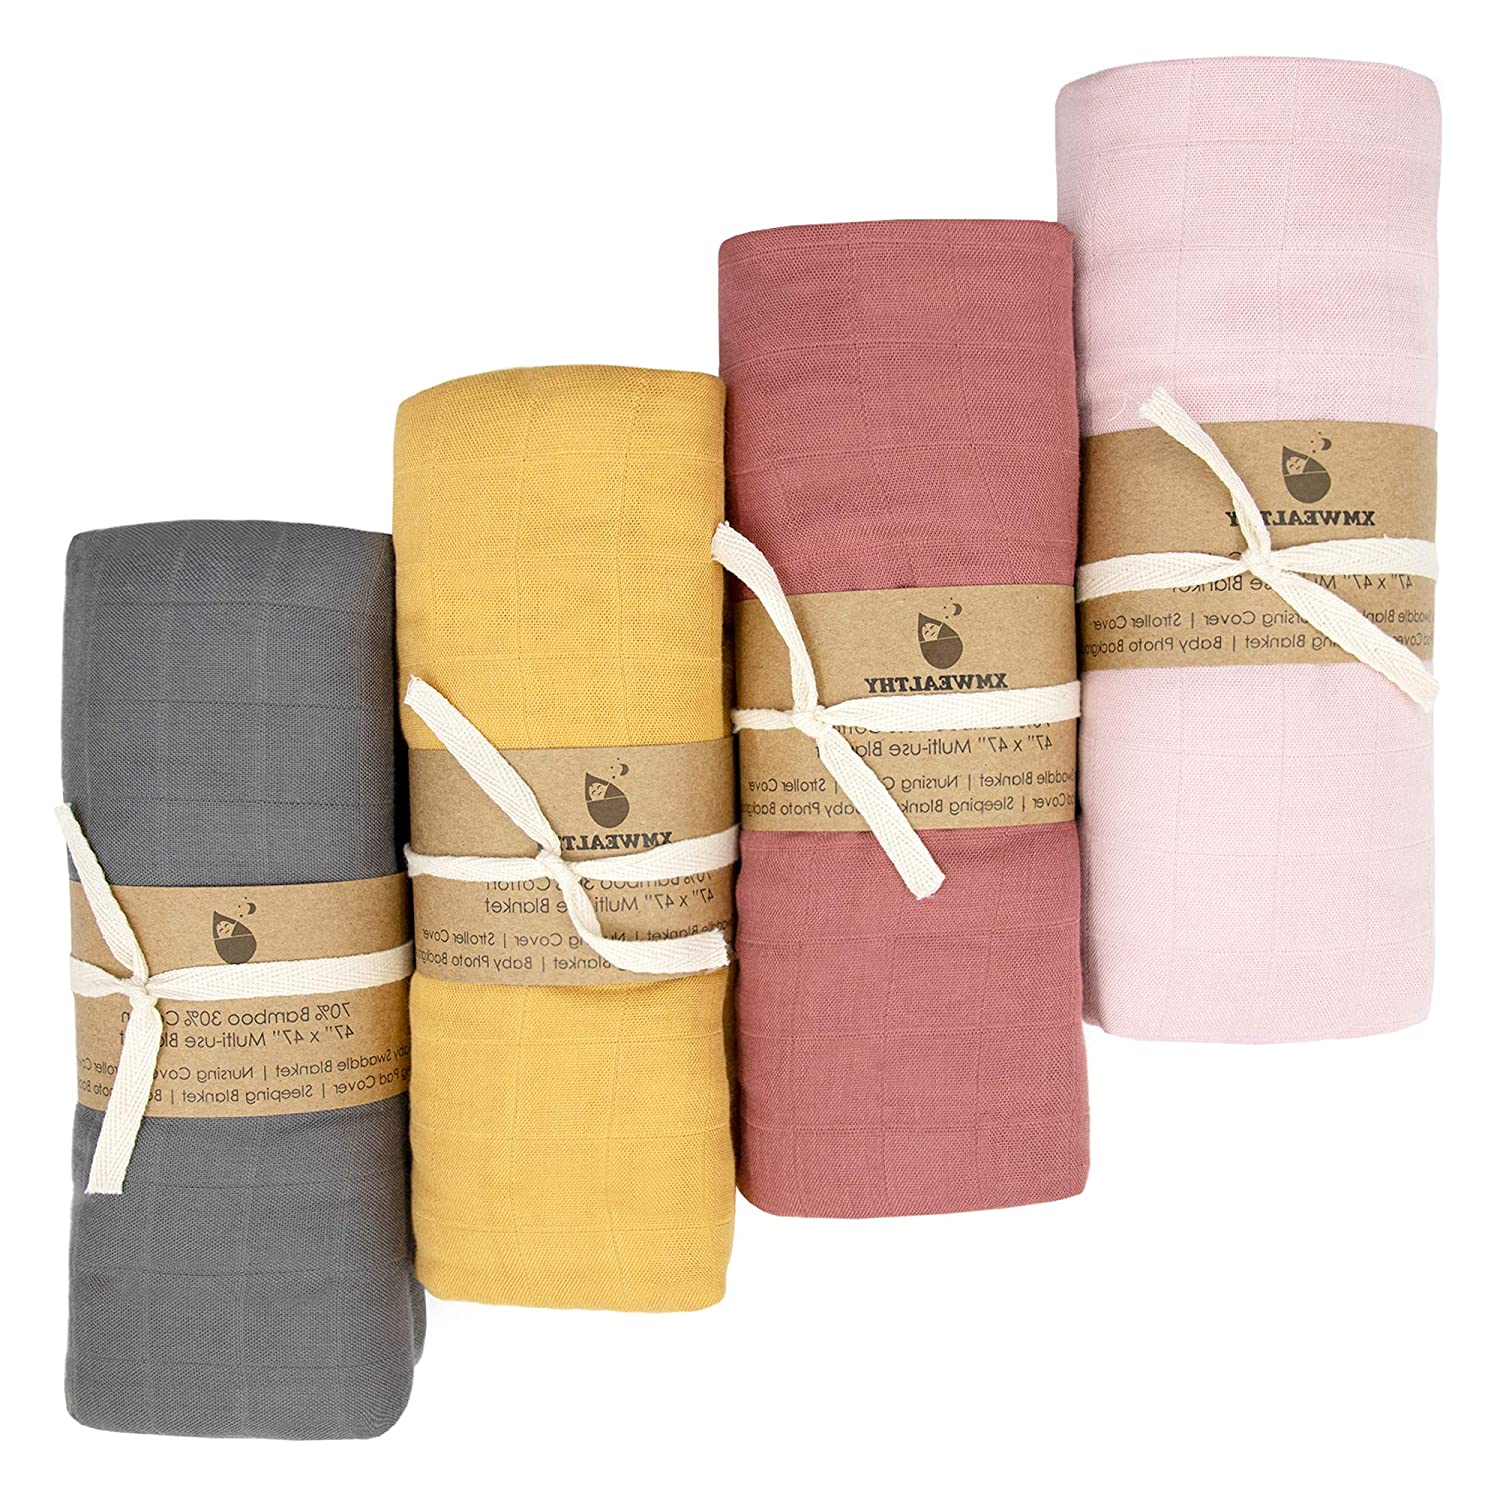 XMWEALTHY 4 Packs Soft Swaddle Blankets Sets 47 x 47 Organic Baby Receiving Blankets Muslin Baby Wraps Sets for Boys /& Girls Ideal Newborn Gifts